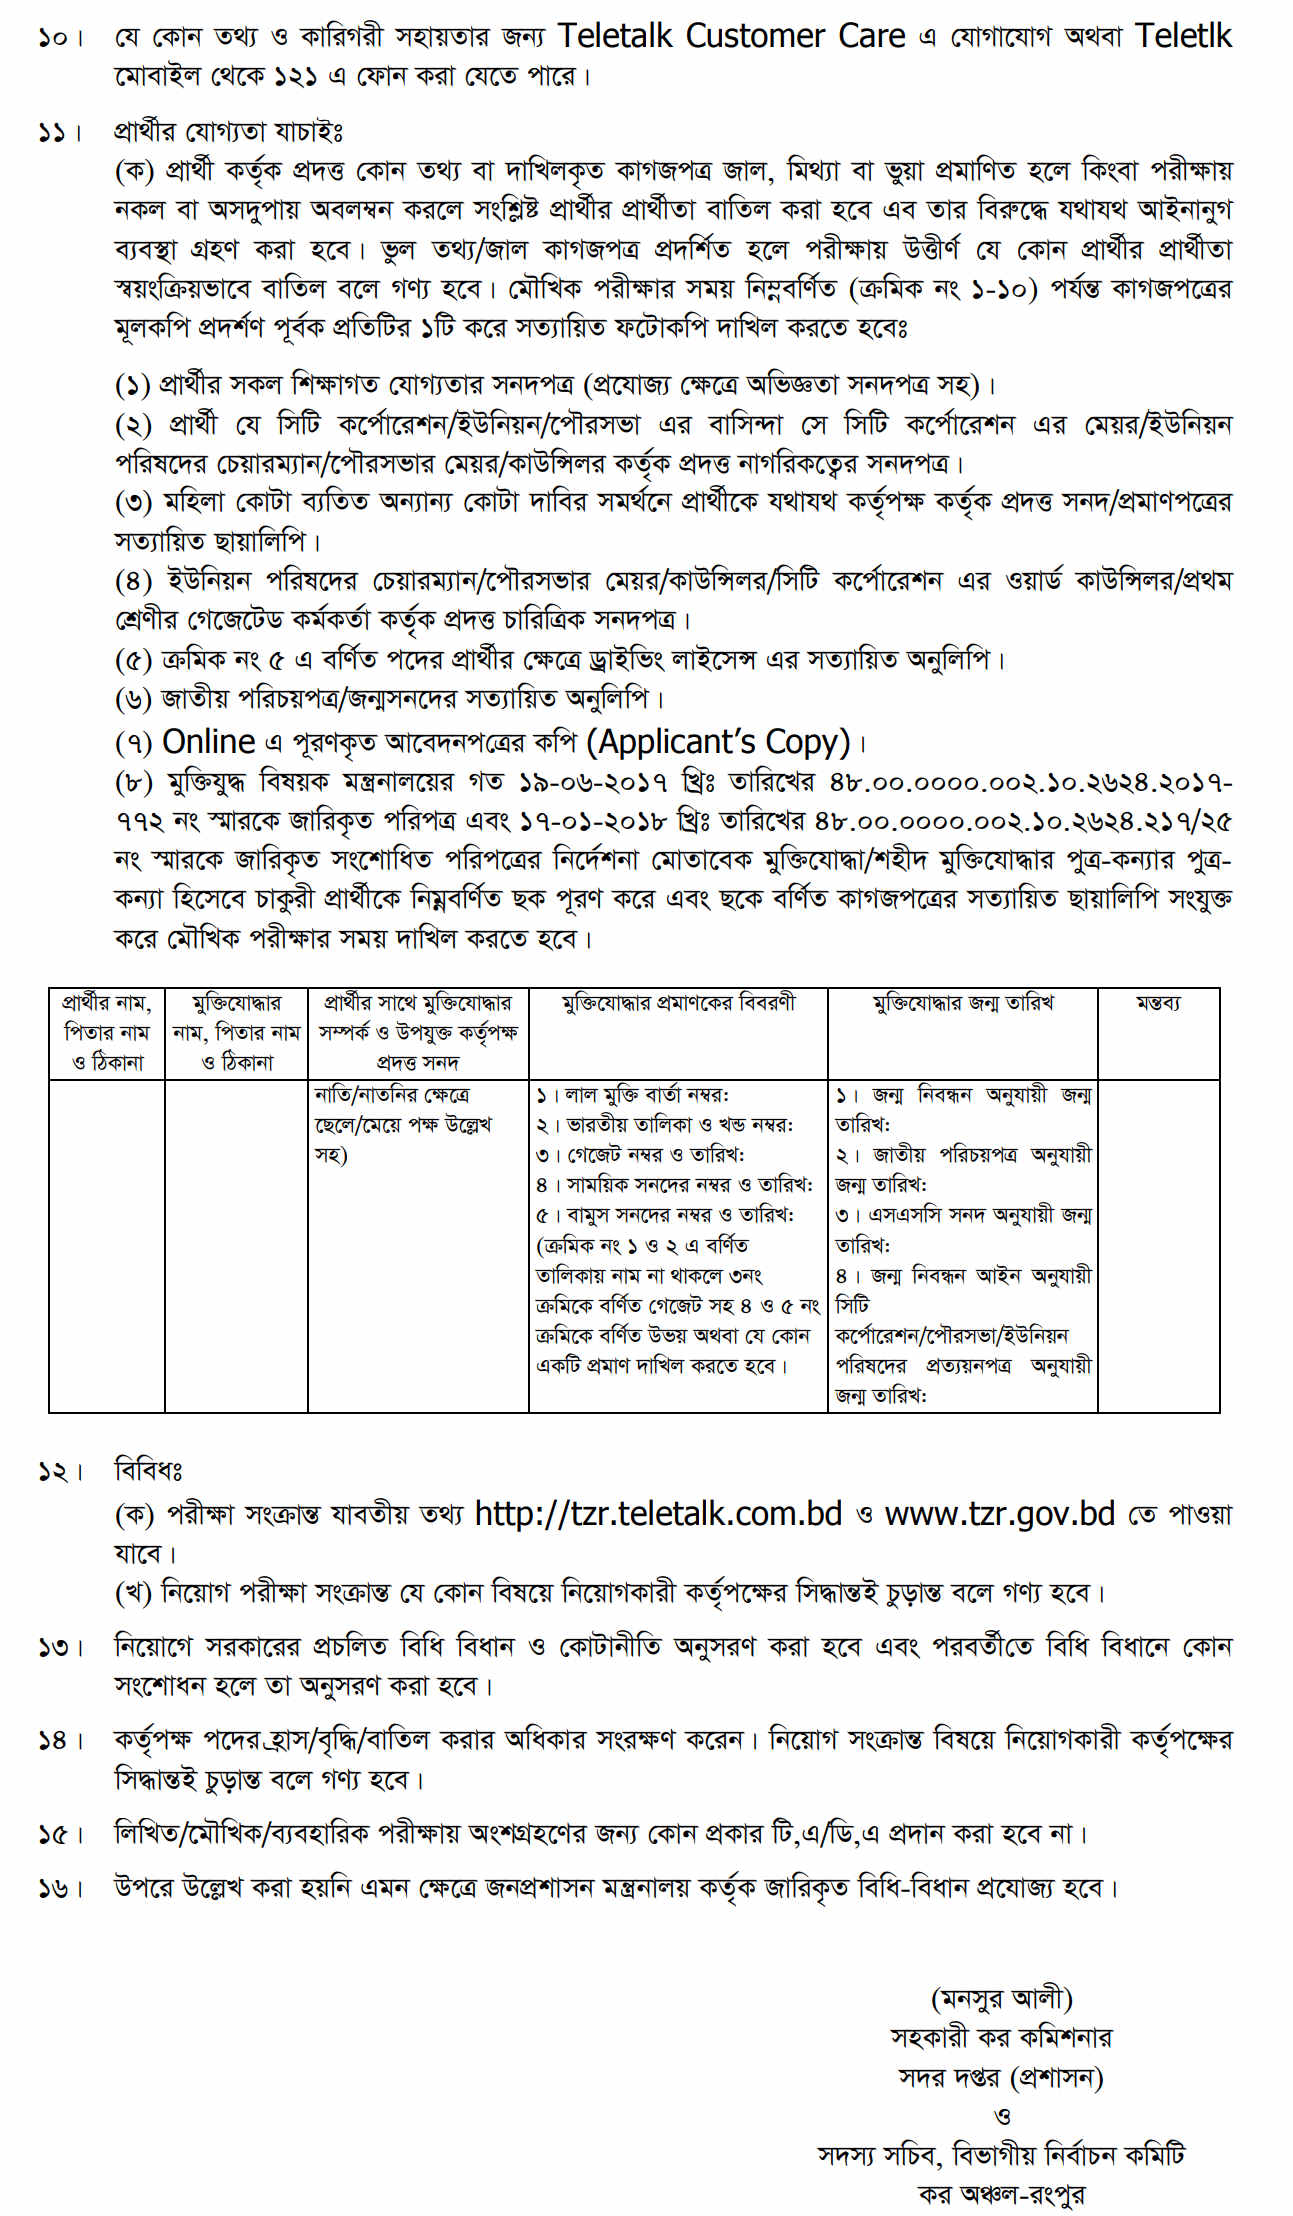 tax-commissioners-office-jobs-circular-3